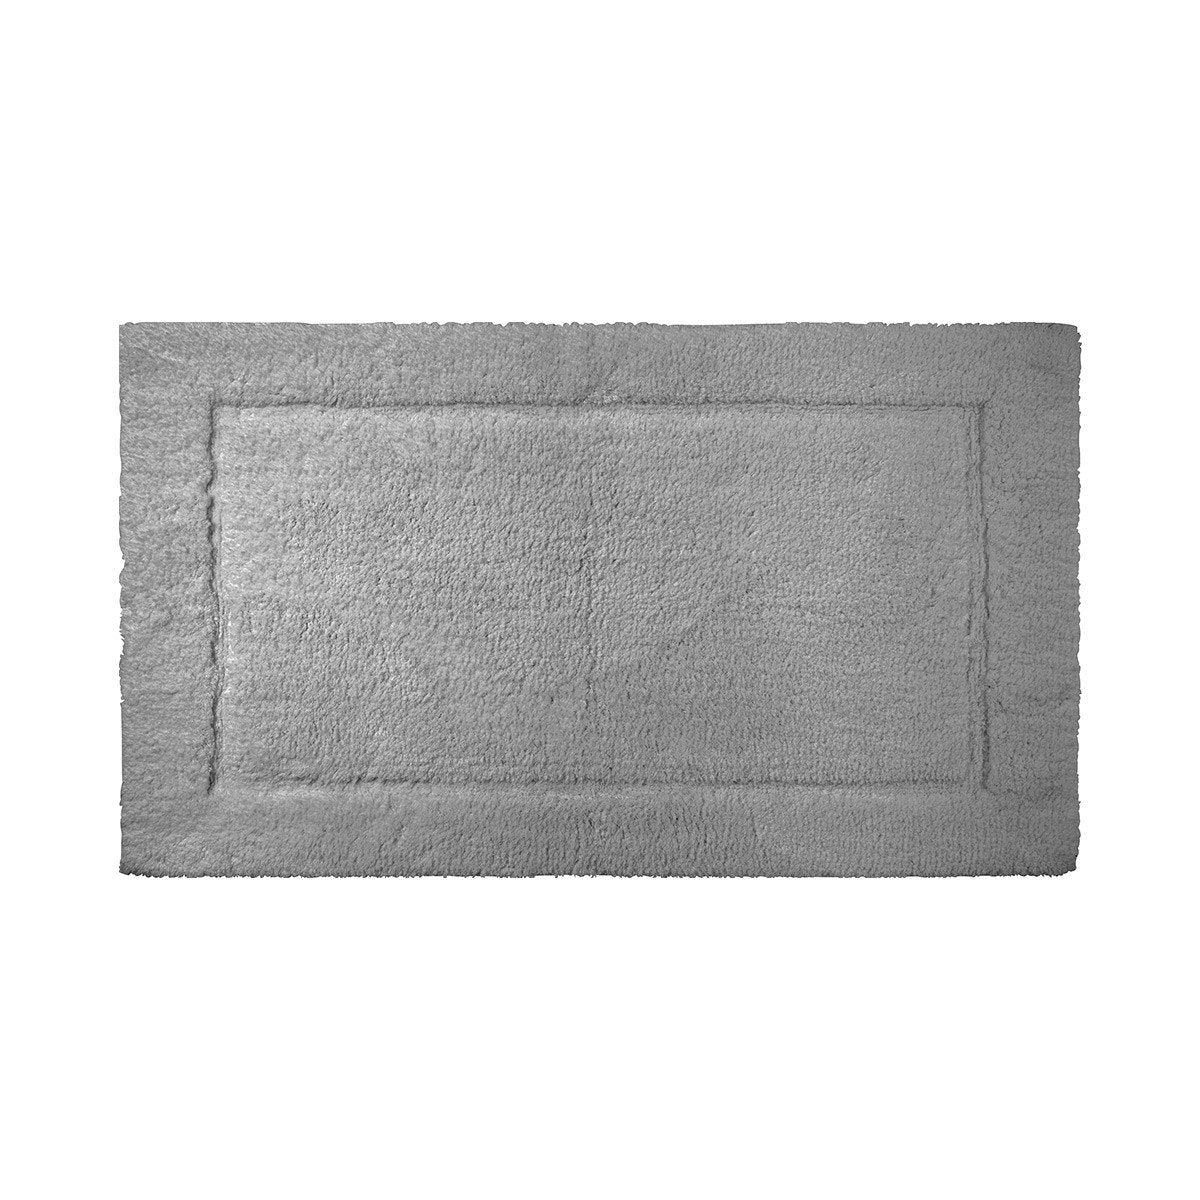 Prestige Platine Bath Rug by Yves Delorme | Fig Linens - Gray, bath mat, rug, cotton